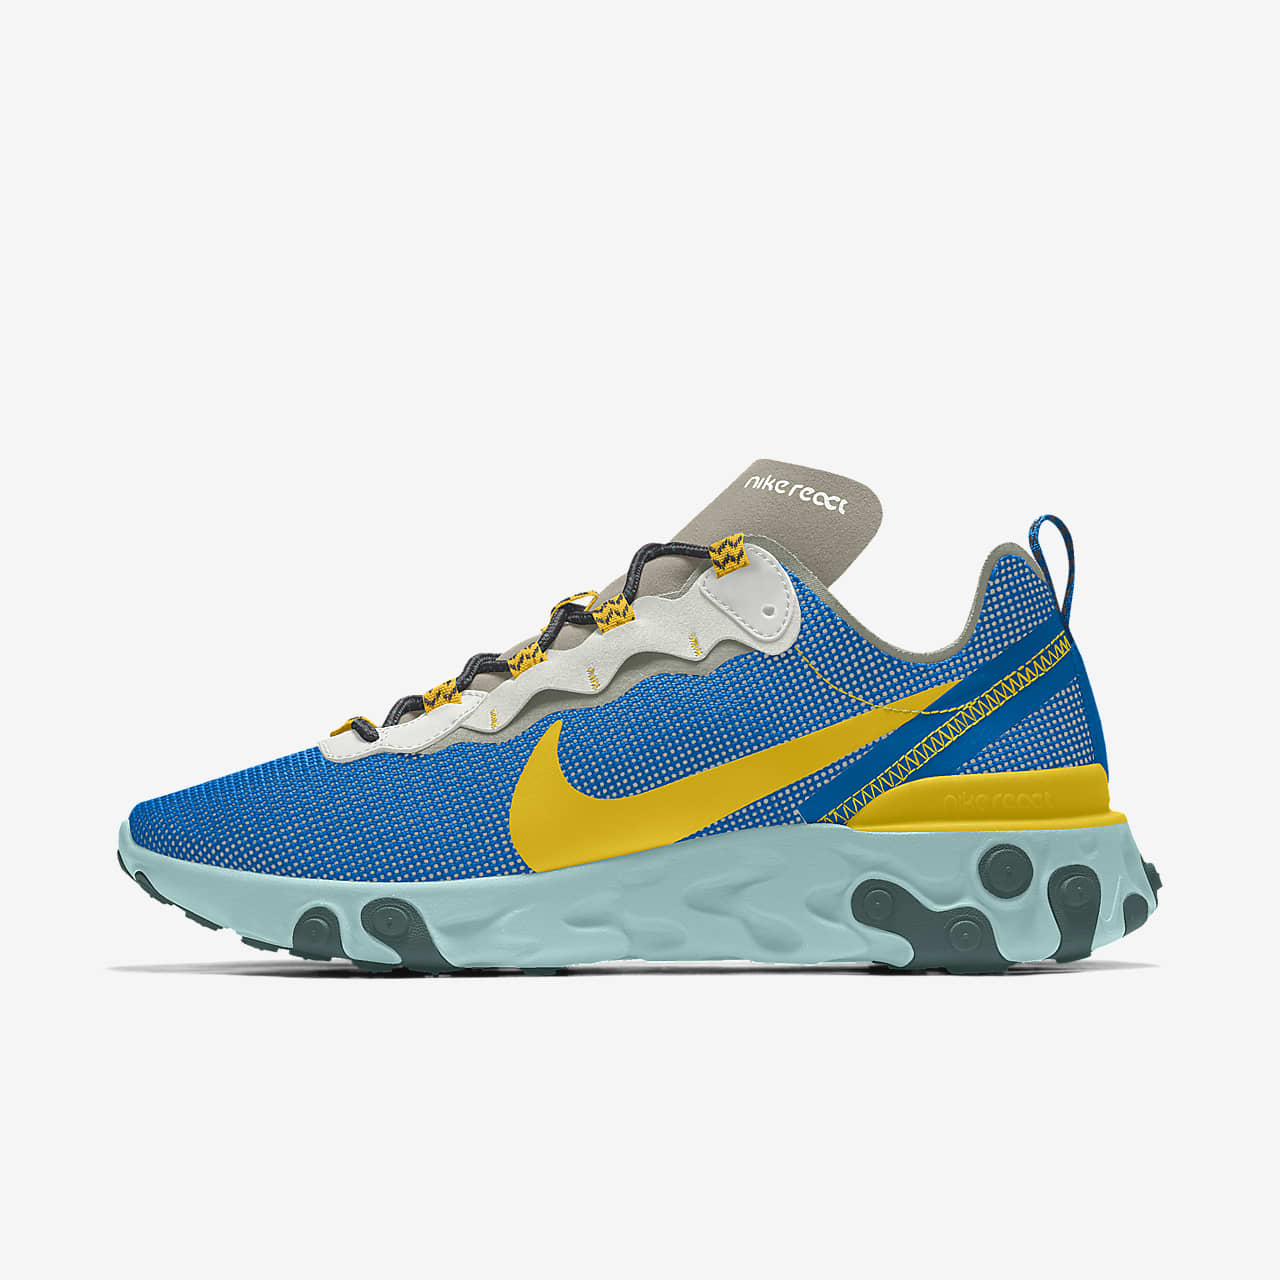 Nike React Element 55 Premium By You Custom herenschoen